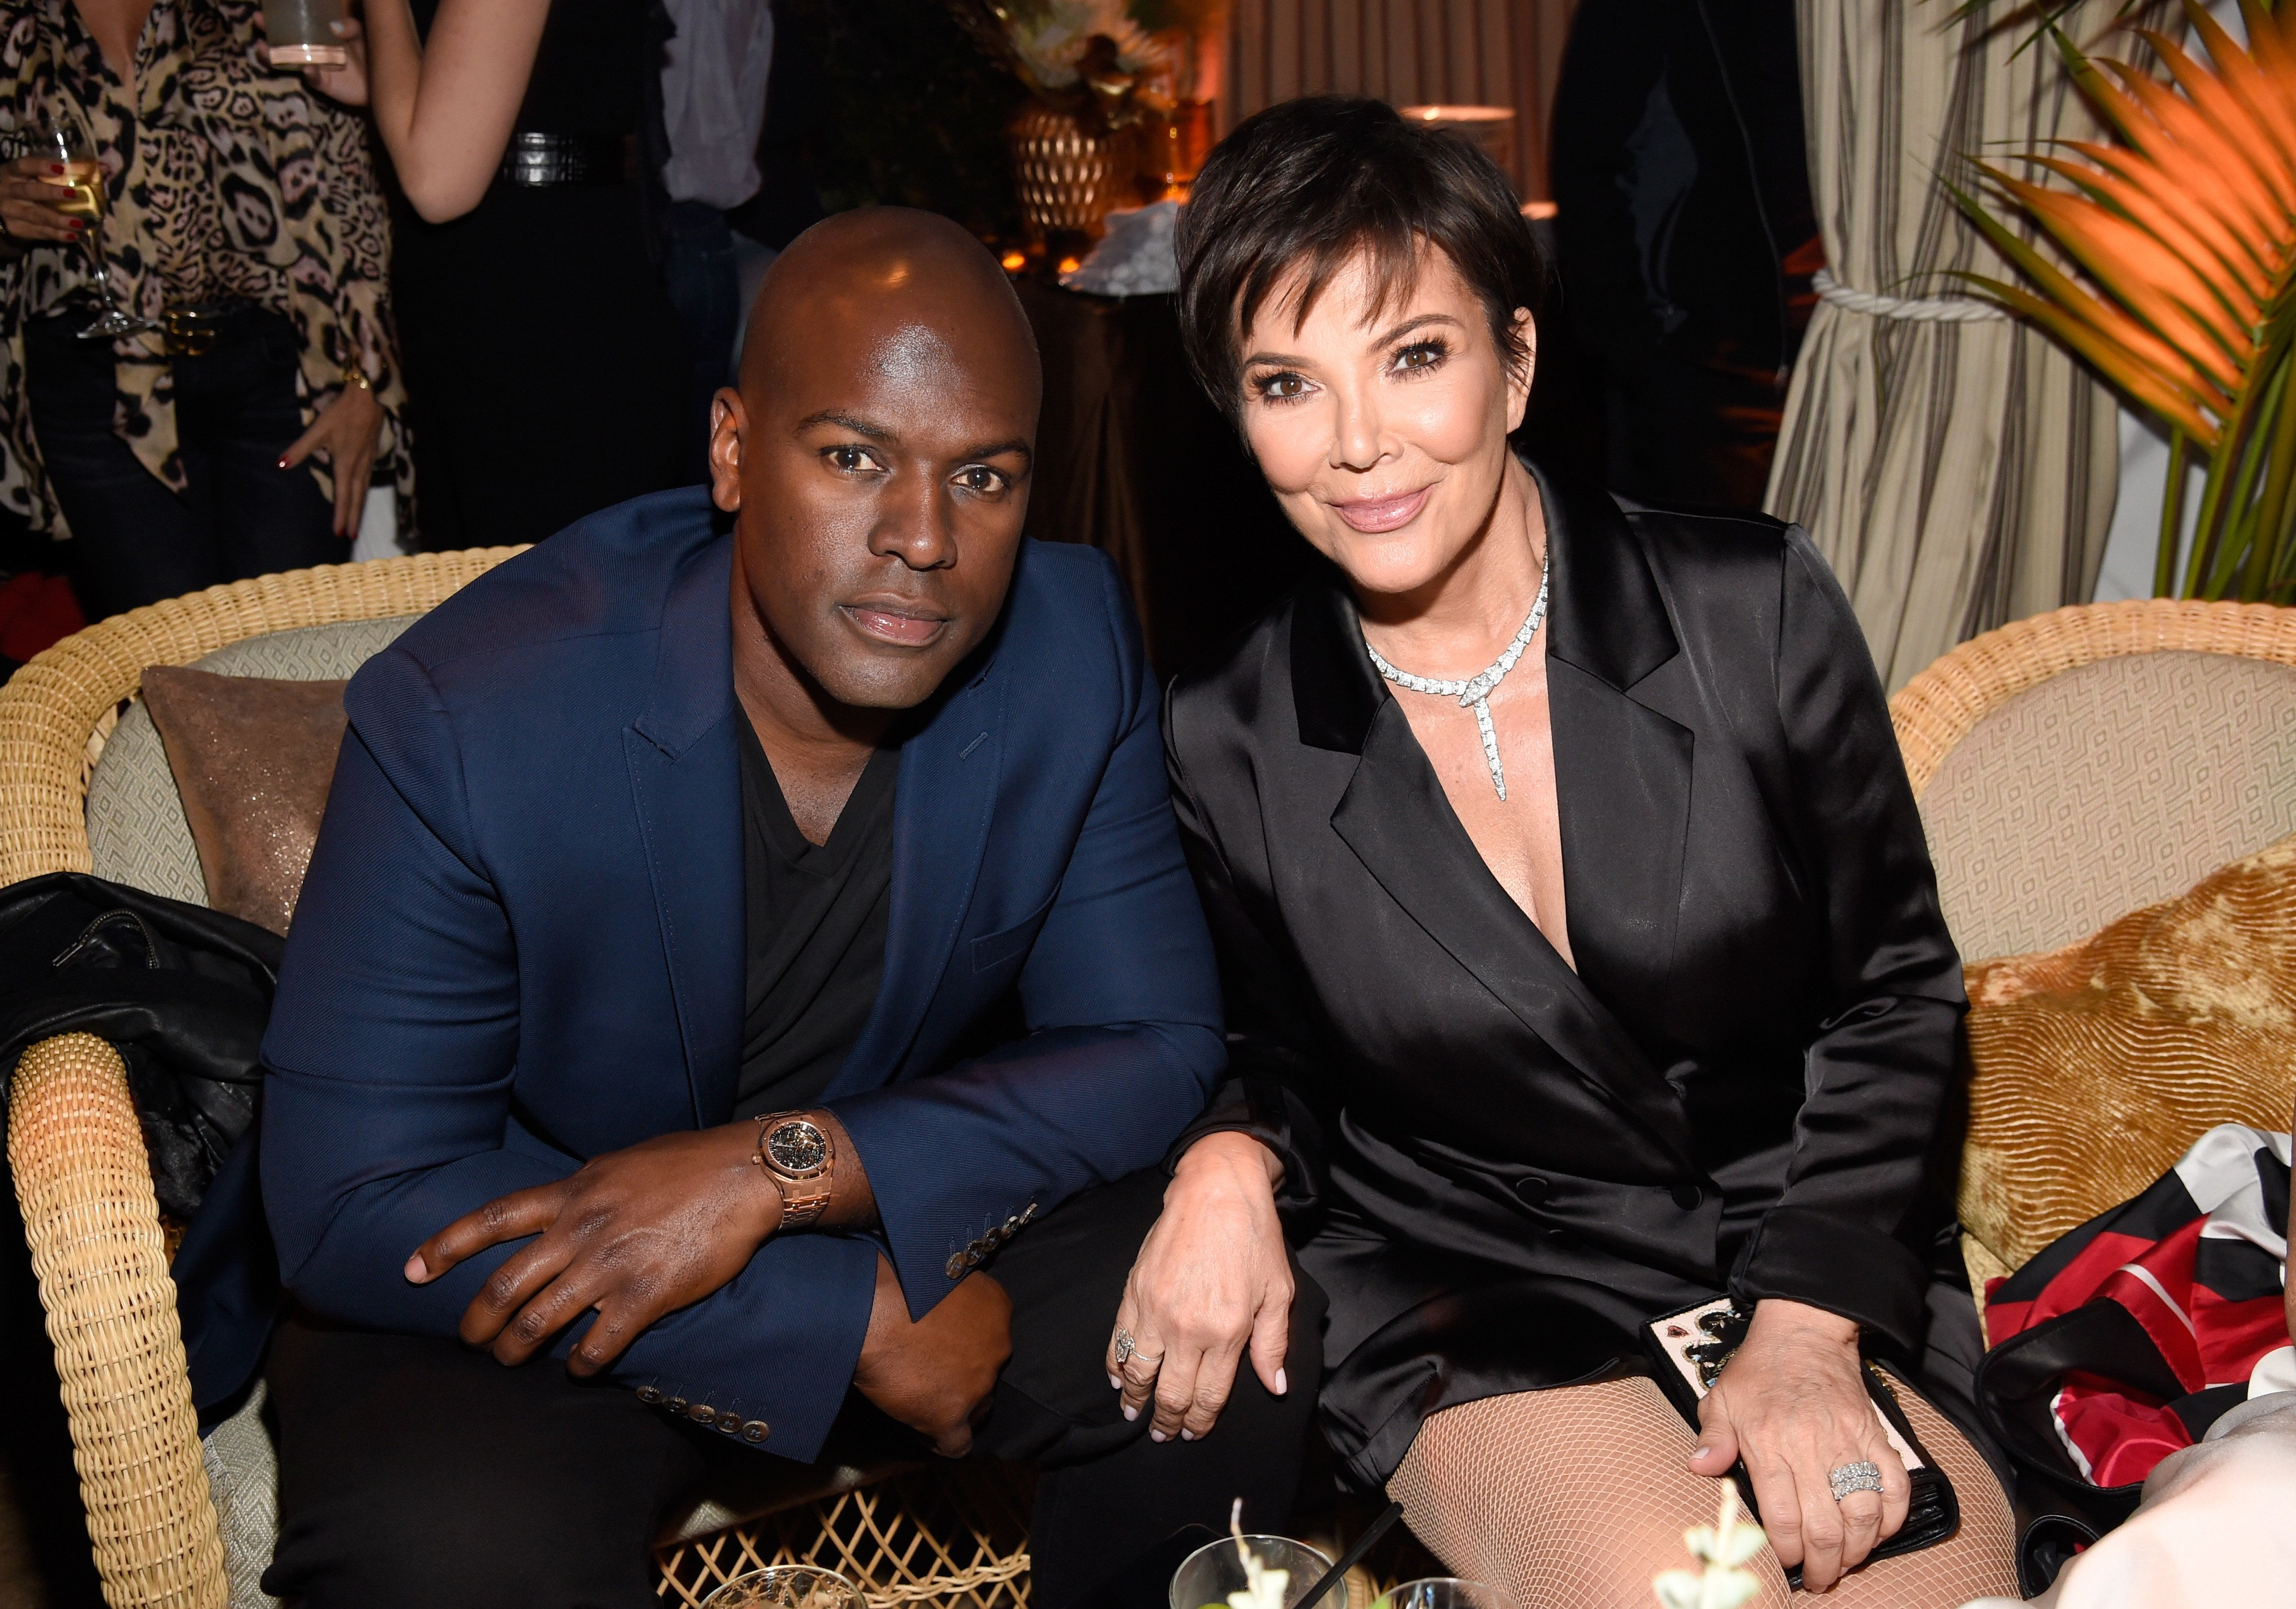 Are Kris Jenner and Corey Gamble engaged?